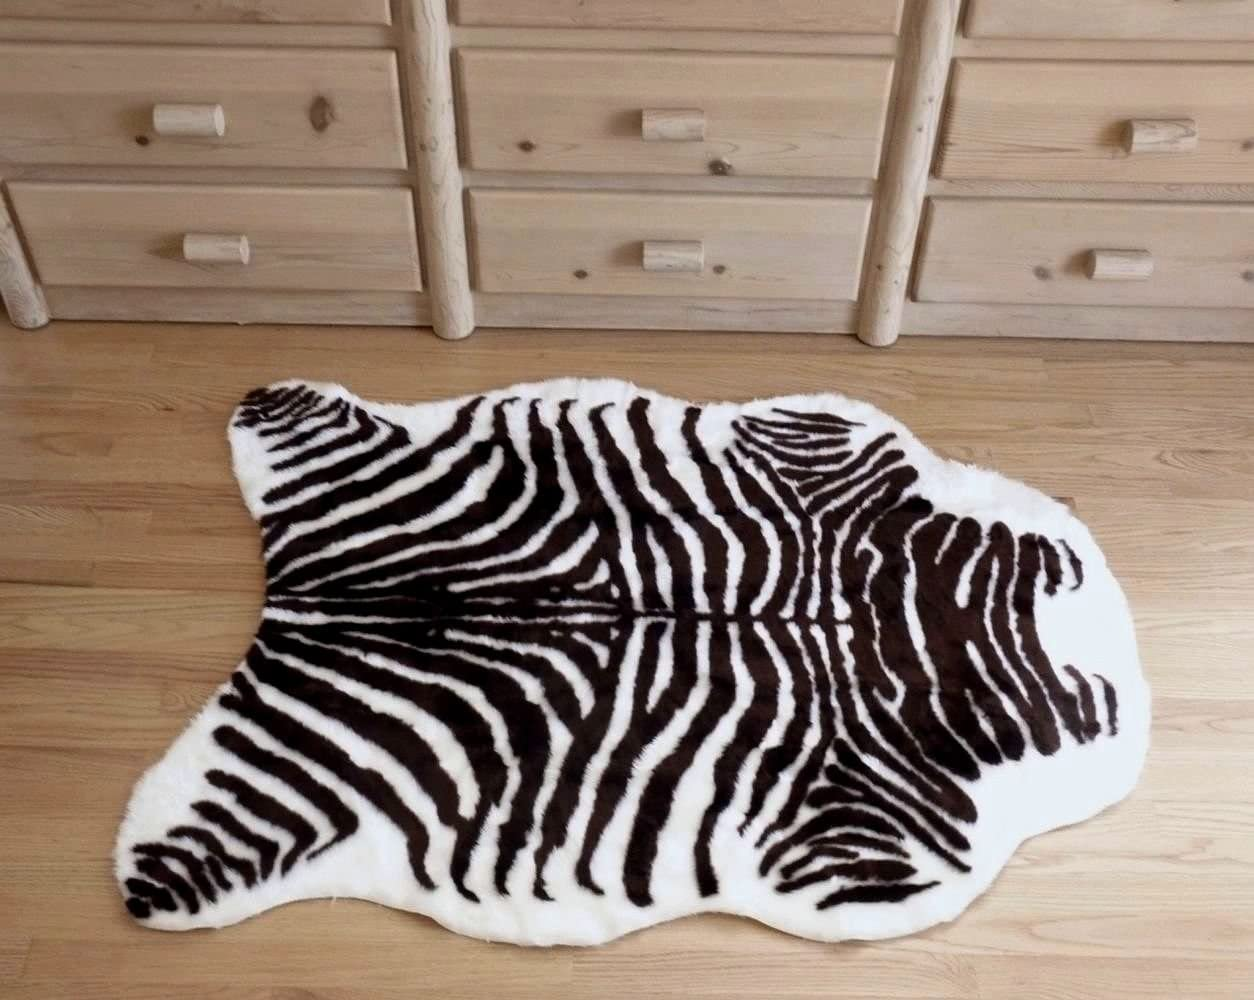 Hollywood Love Rugs Plush Brown and White Faux Zebra Skin Rug from France 3 X 5